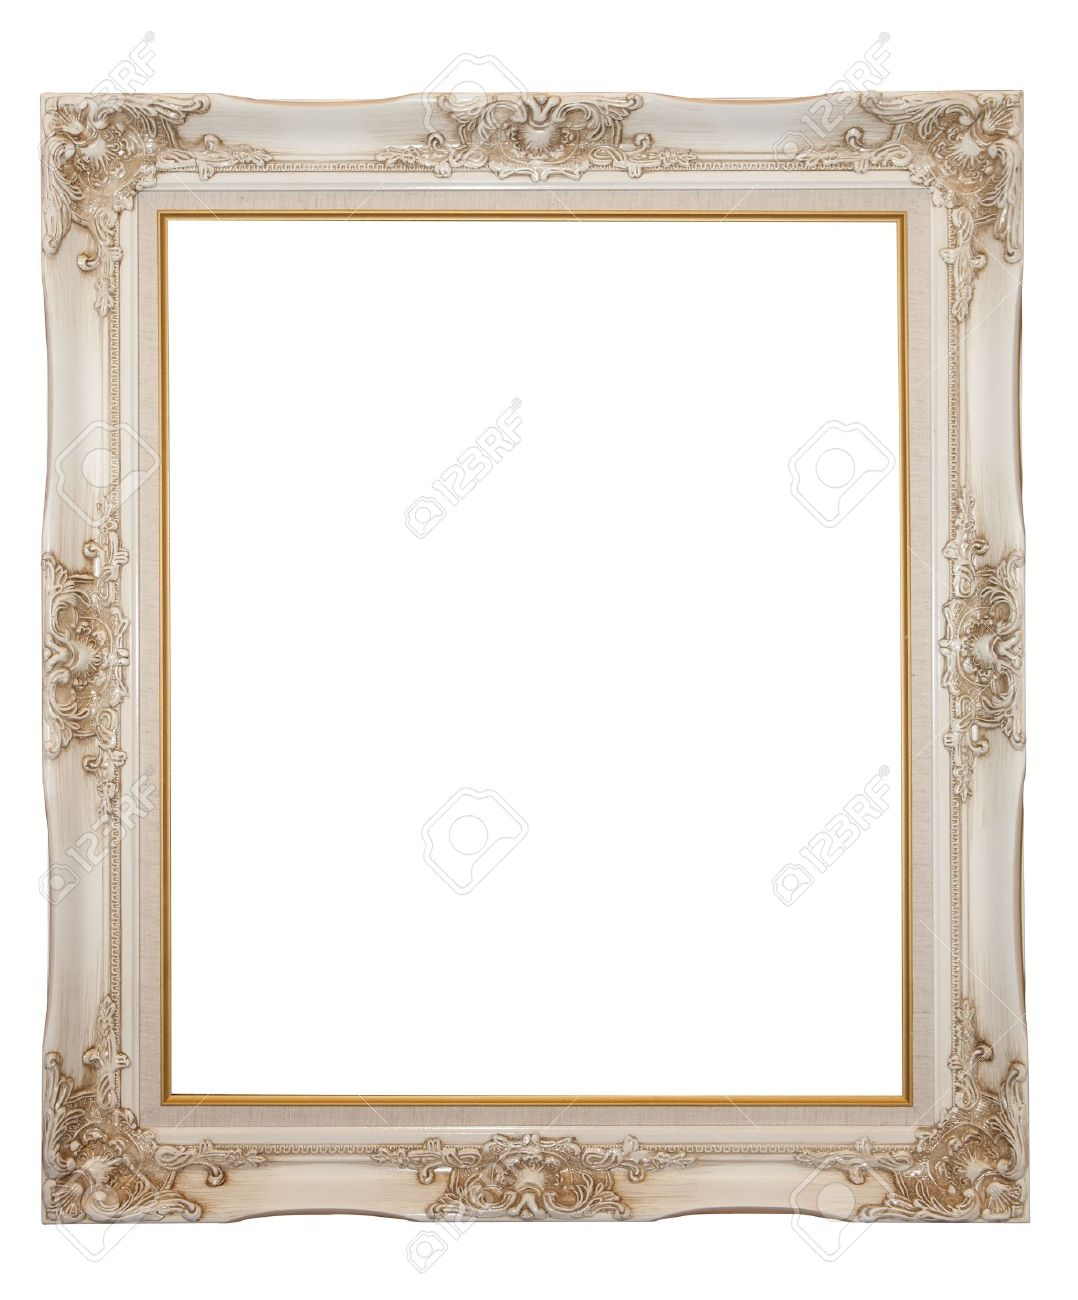 XXL Isolated: Vintage Wood Frame Stock Photo, Picture And Royalty ...